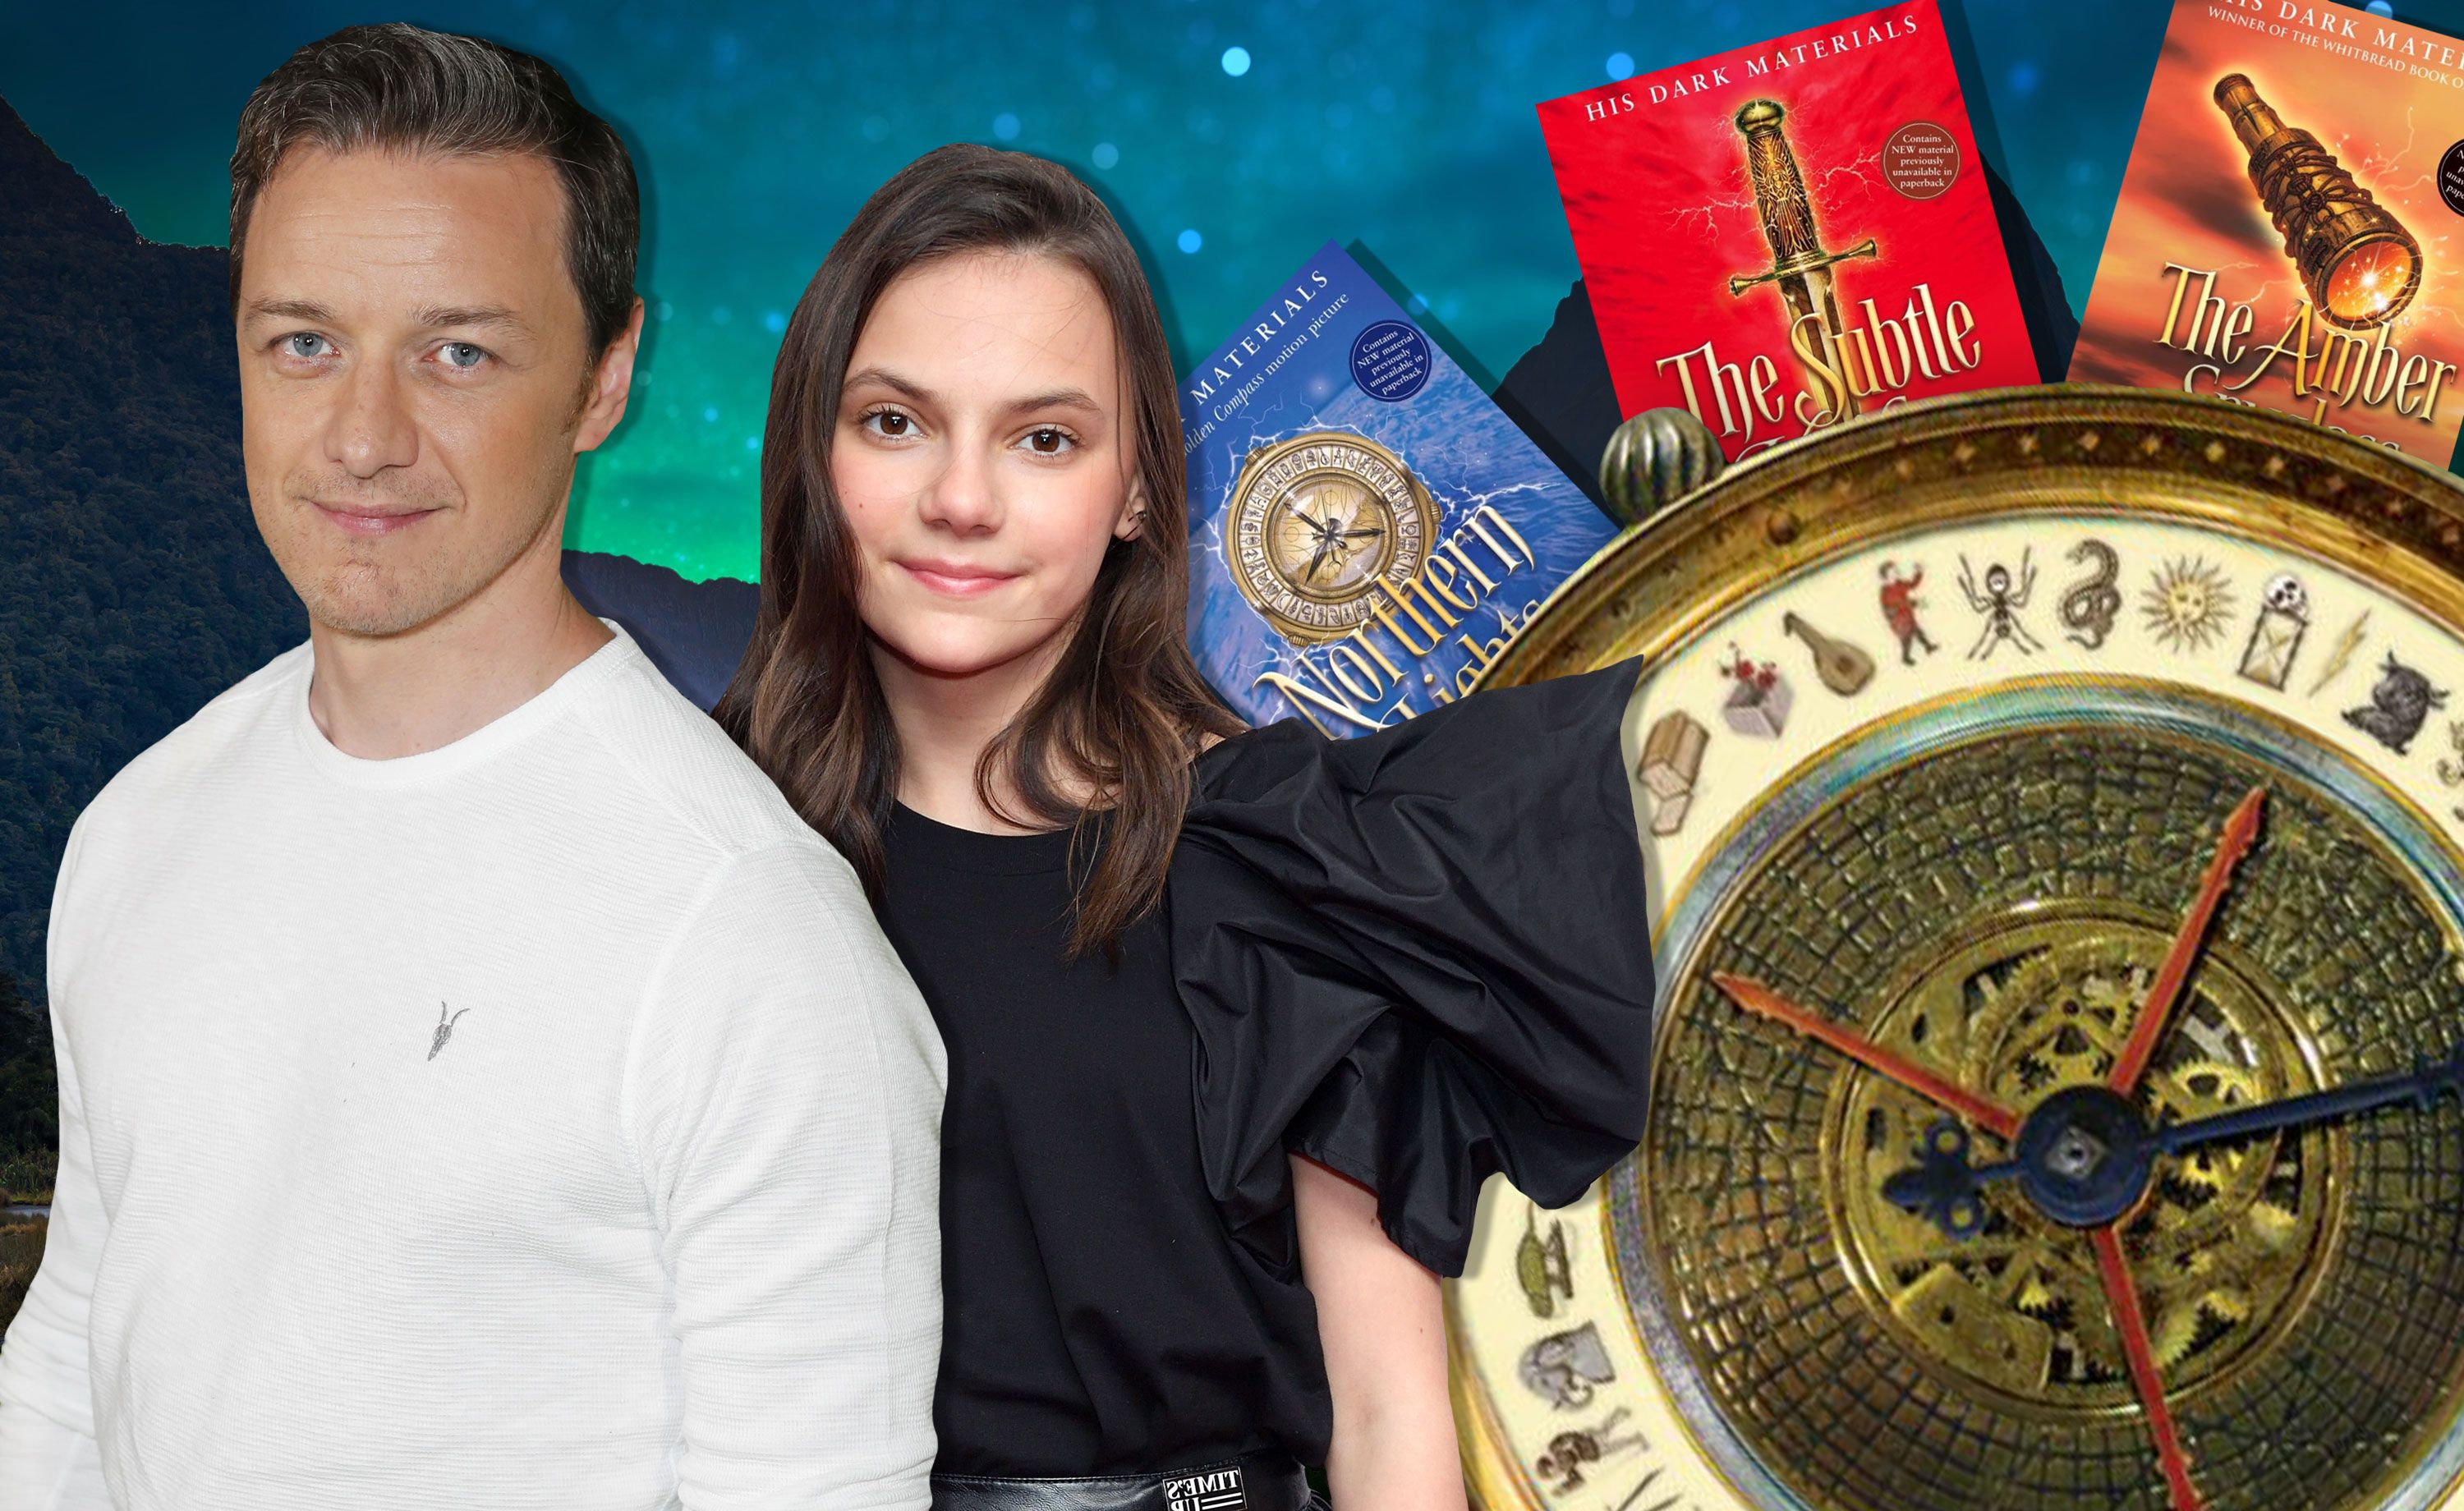 His Dark Materials Tv Series On The Bbc Casting Characters